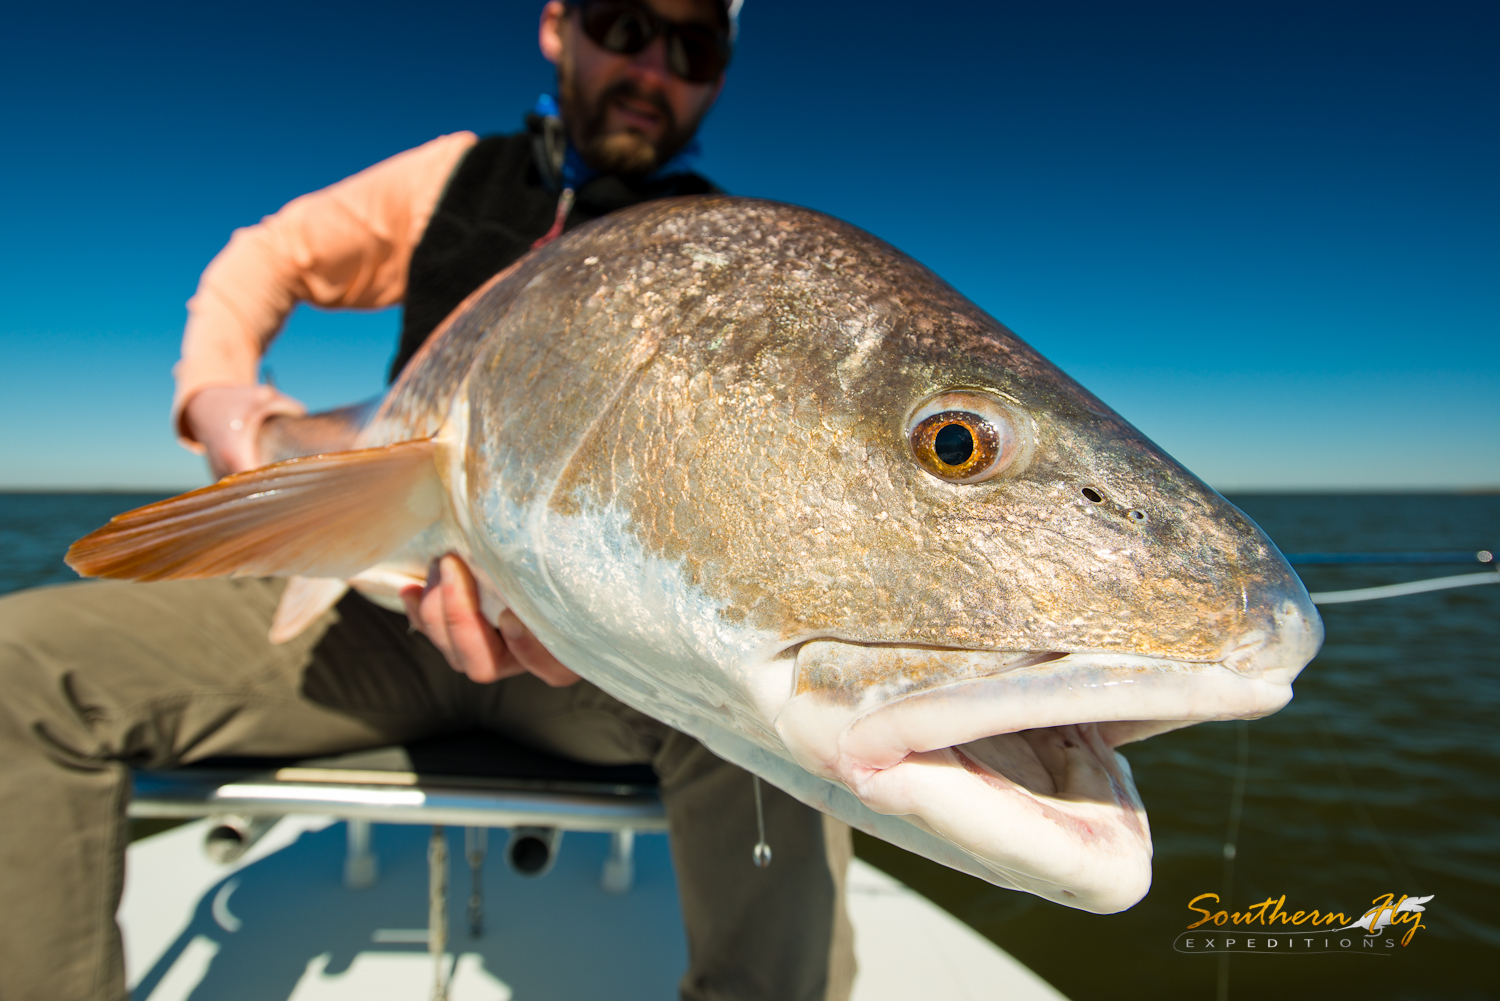 fly fishing for huge redfish in louisiana with Captain Brandon Keck and Southern Fly Expeditions